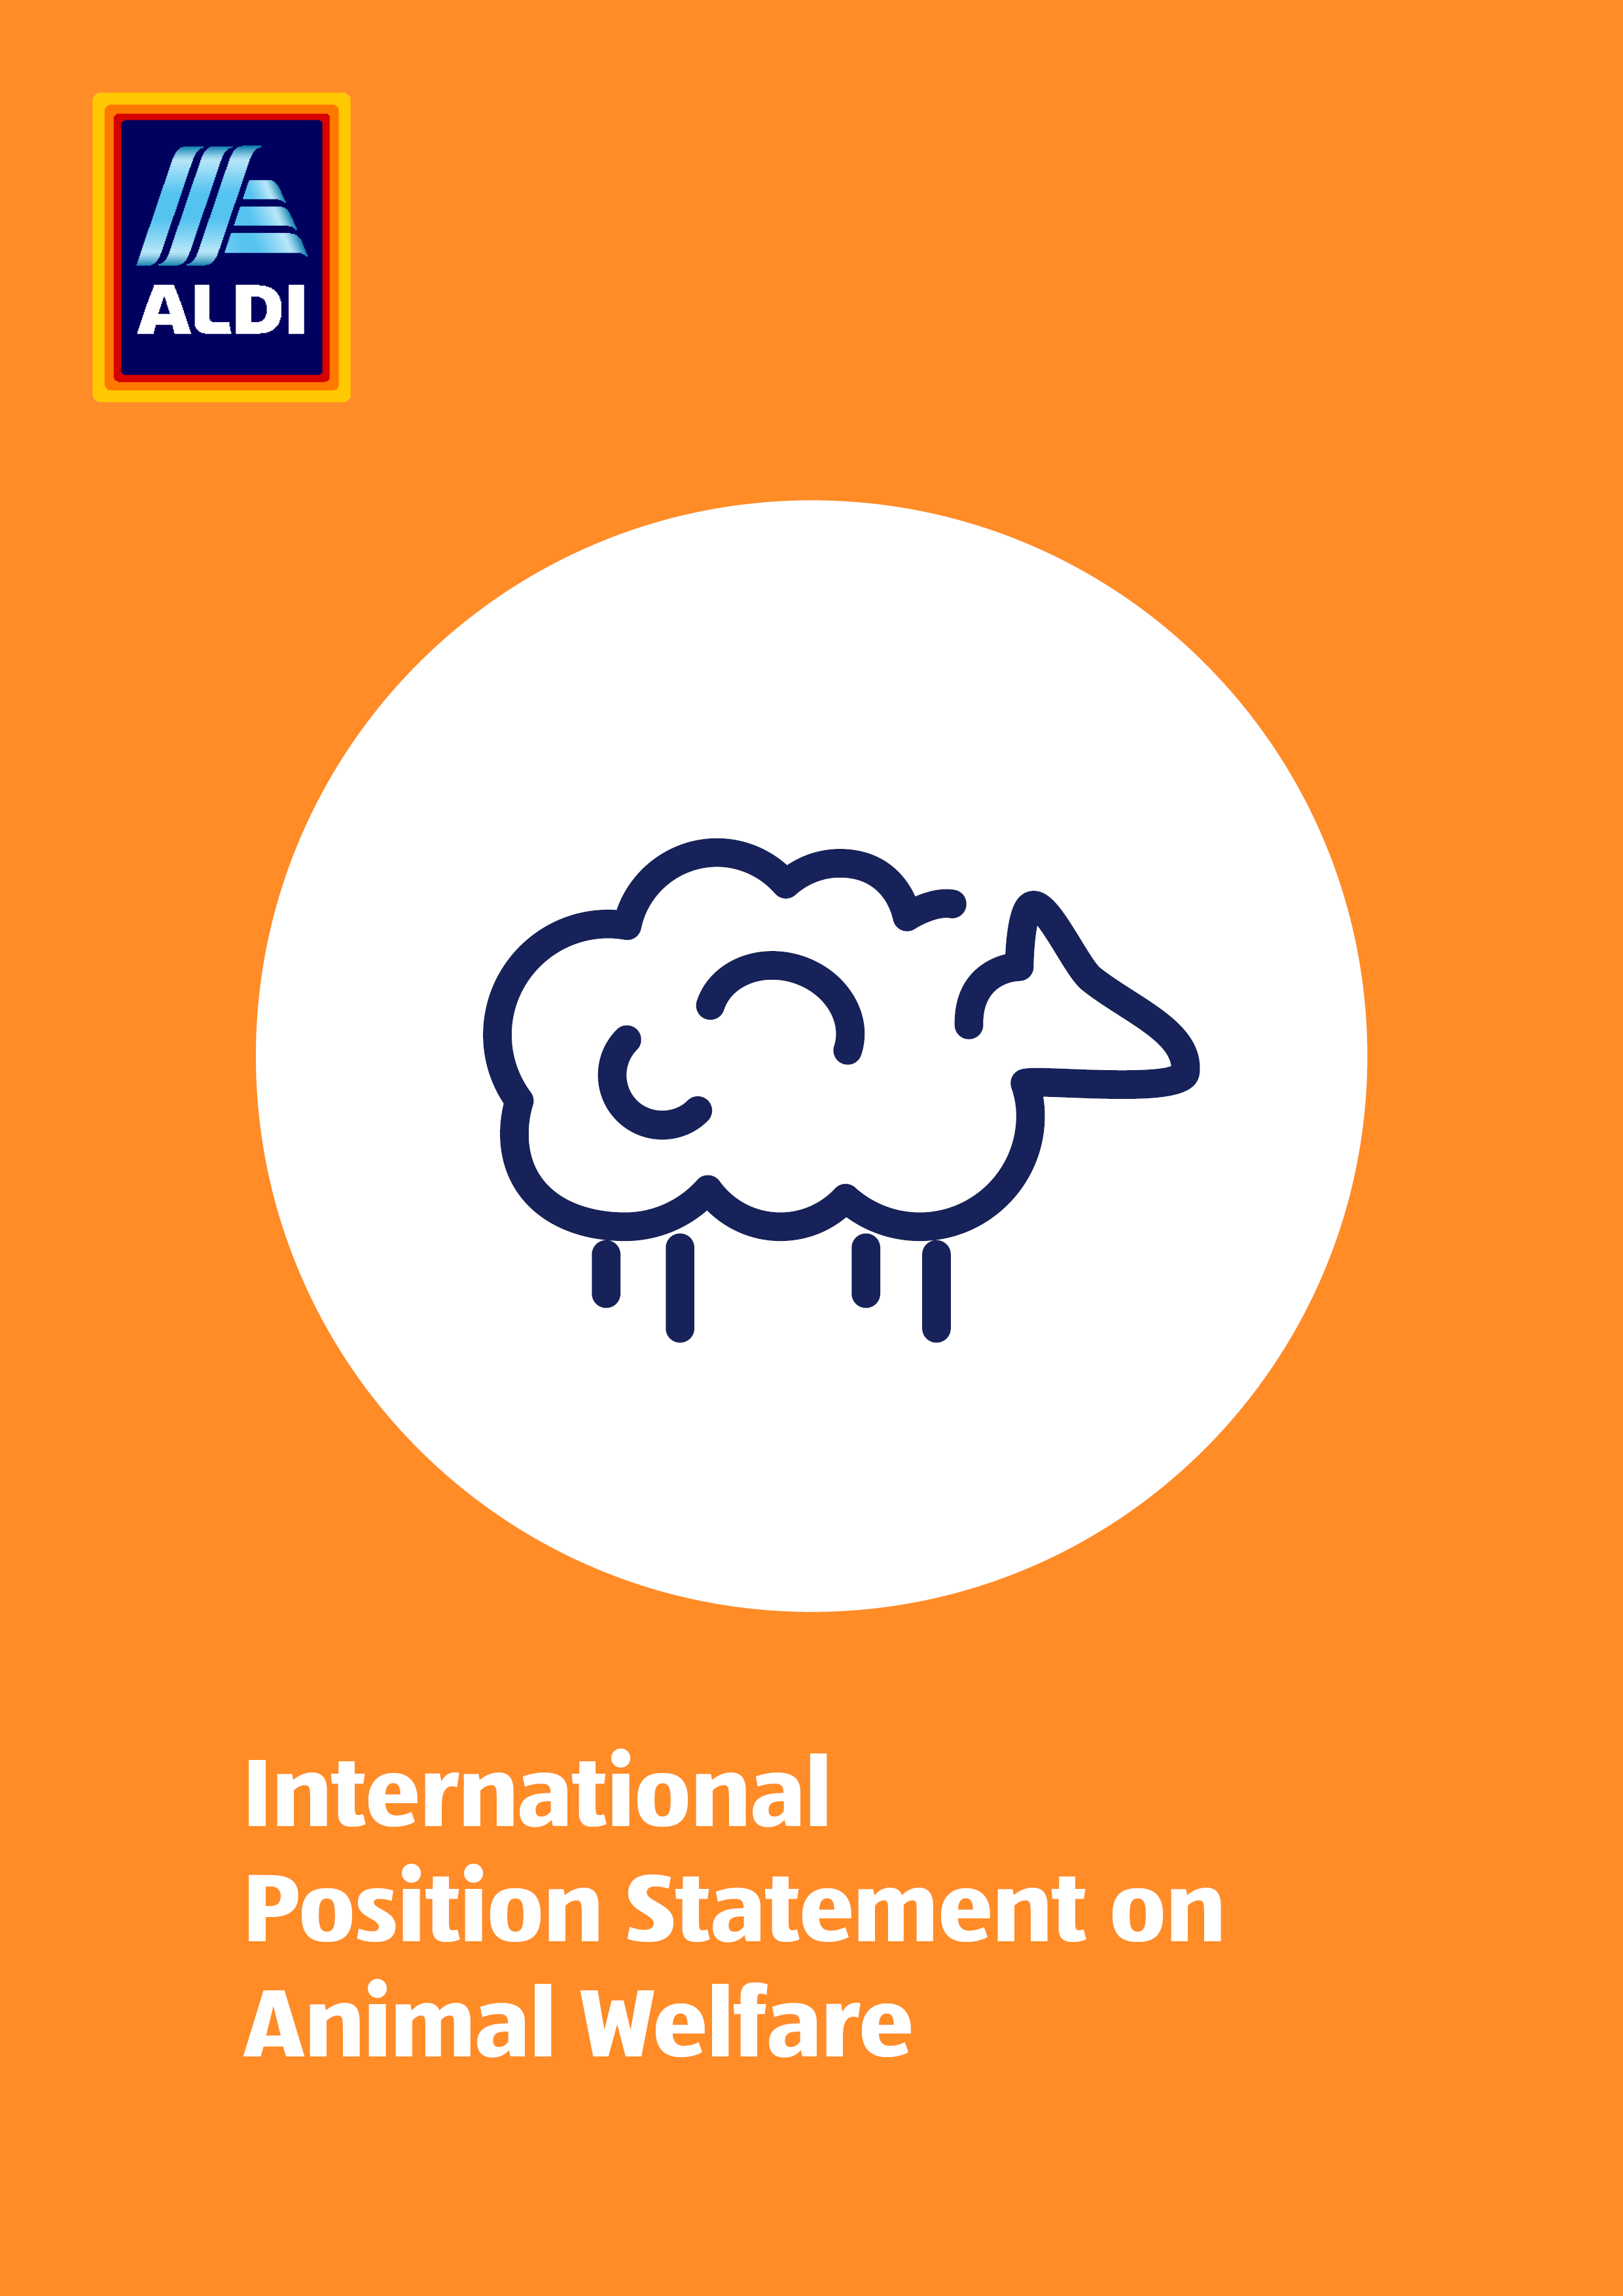 International Position Statement on Animal Welfare